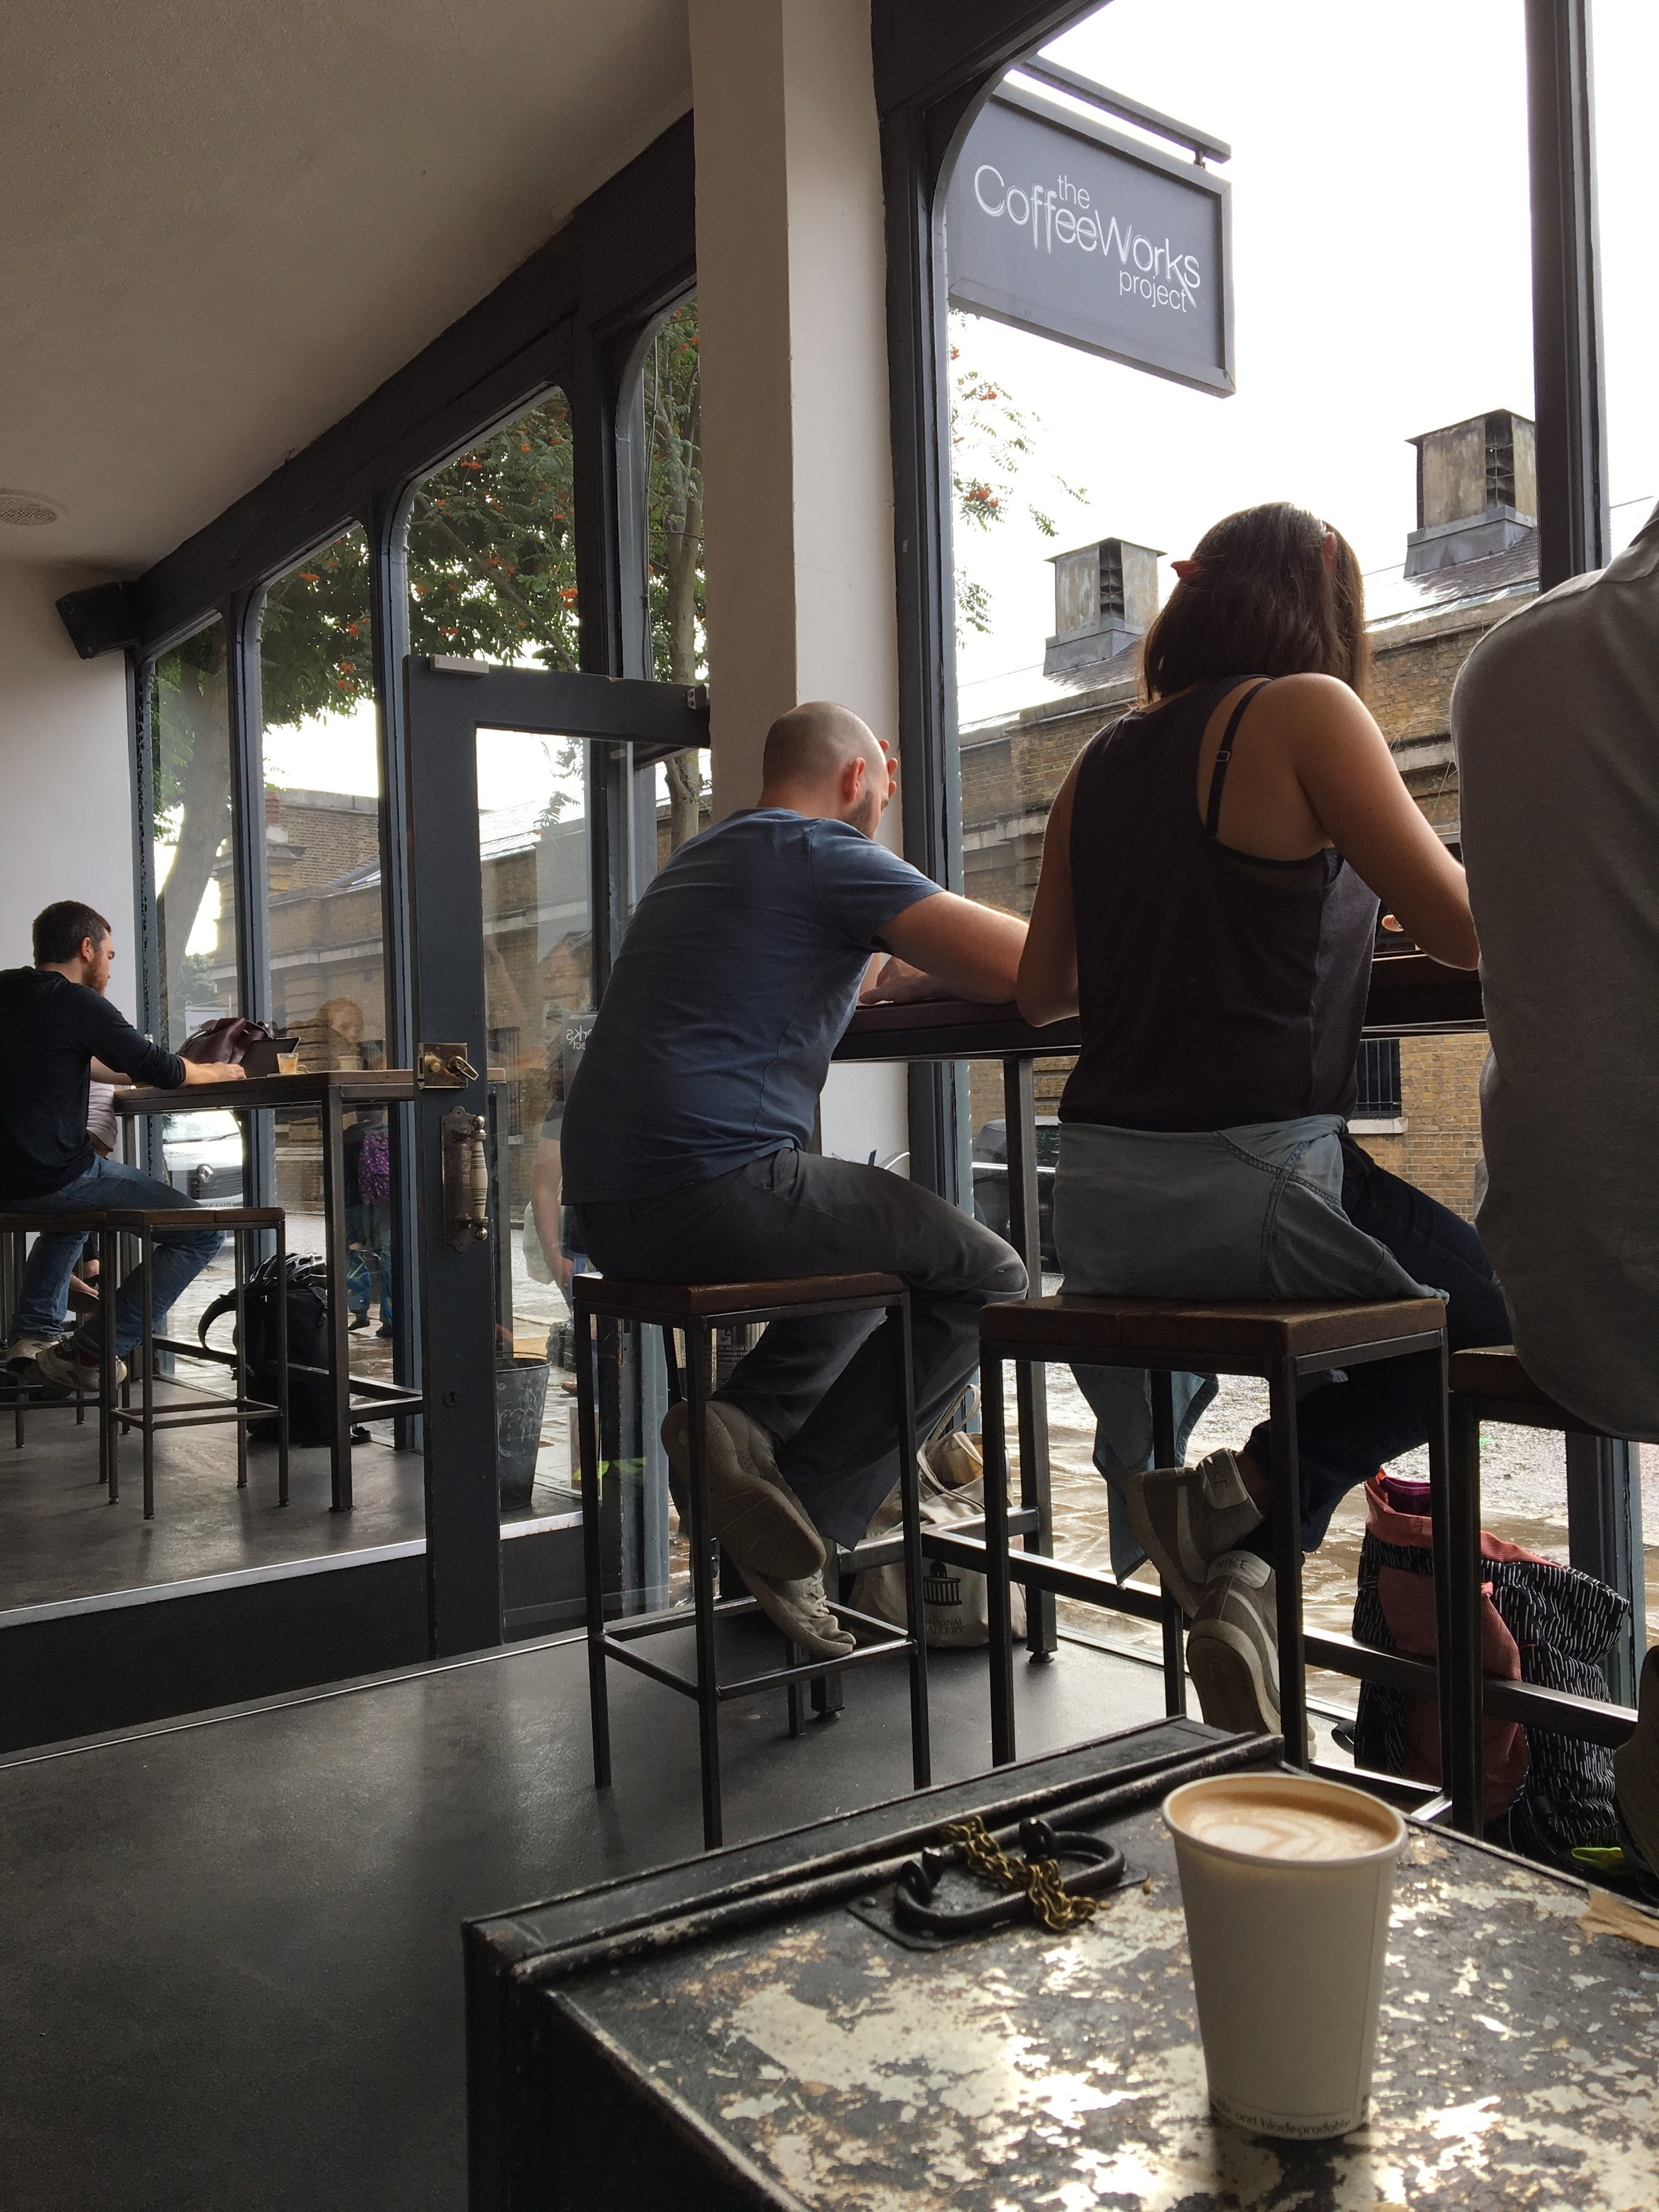 Casual snob - the coffee works project 1.JPG